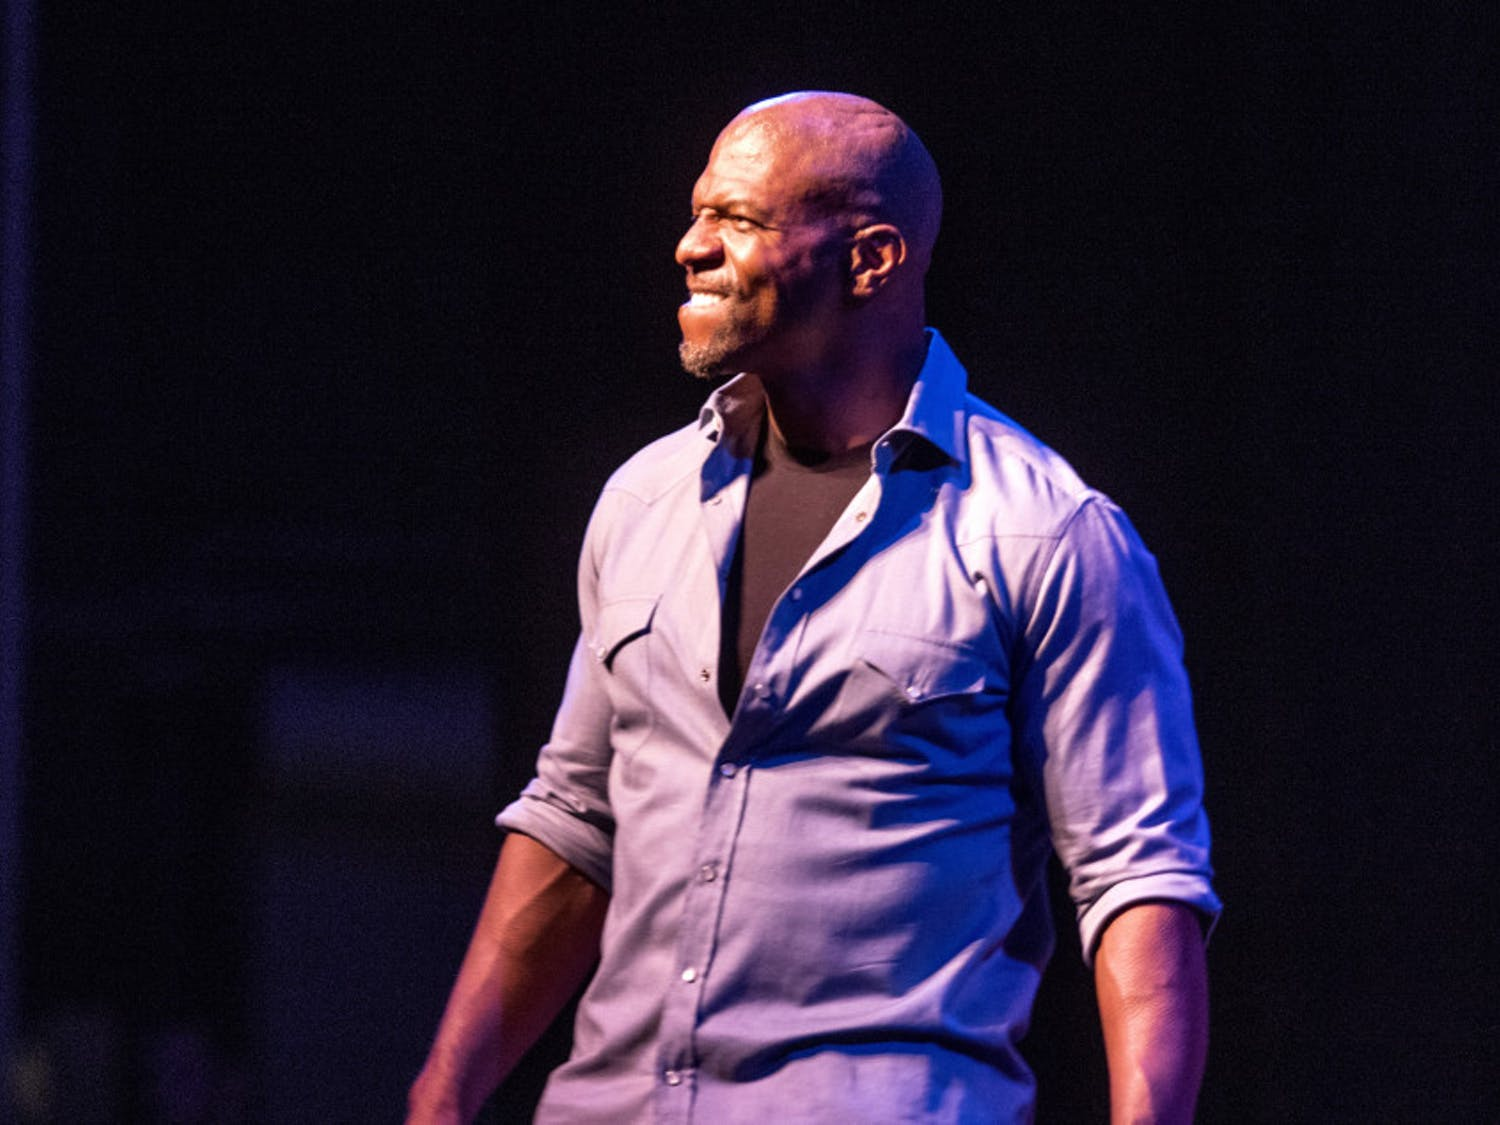 Terry Crews smiles for the crowd as he makes an enthusiastic entrance inside the Phillips Center for the Performing Arts on Tuesday night at the Accent Speakers Bureau-hosted event. Crews shared stories of rejection and perseverance along his journey of success.